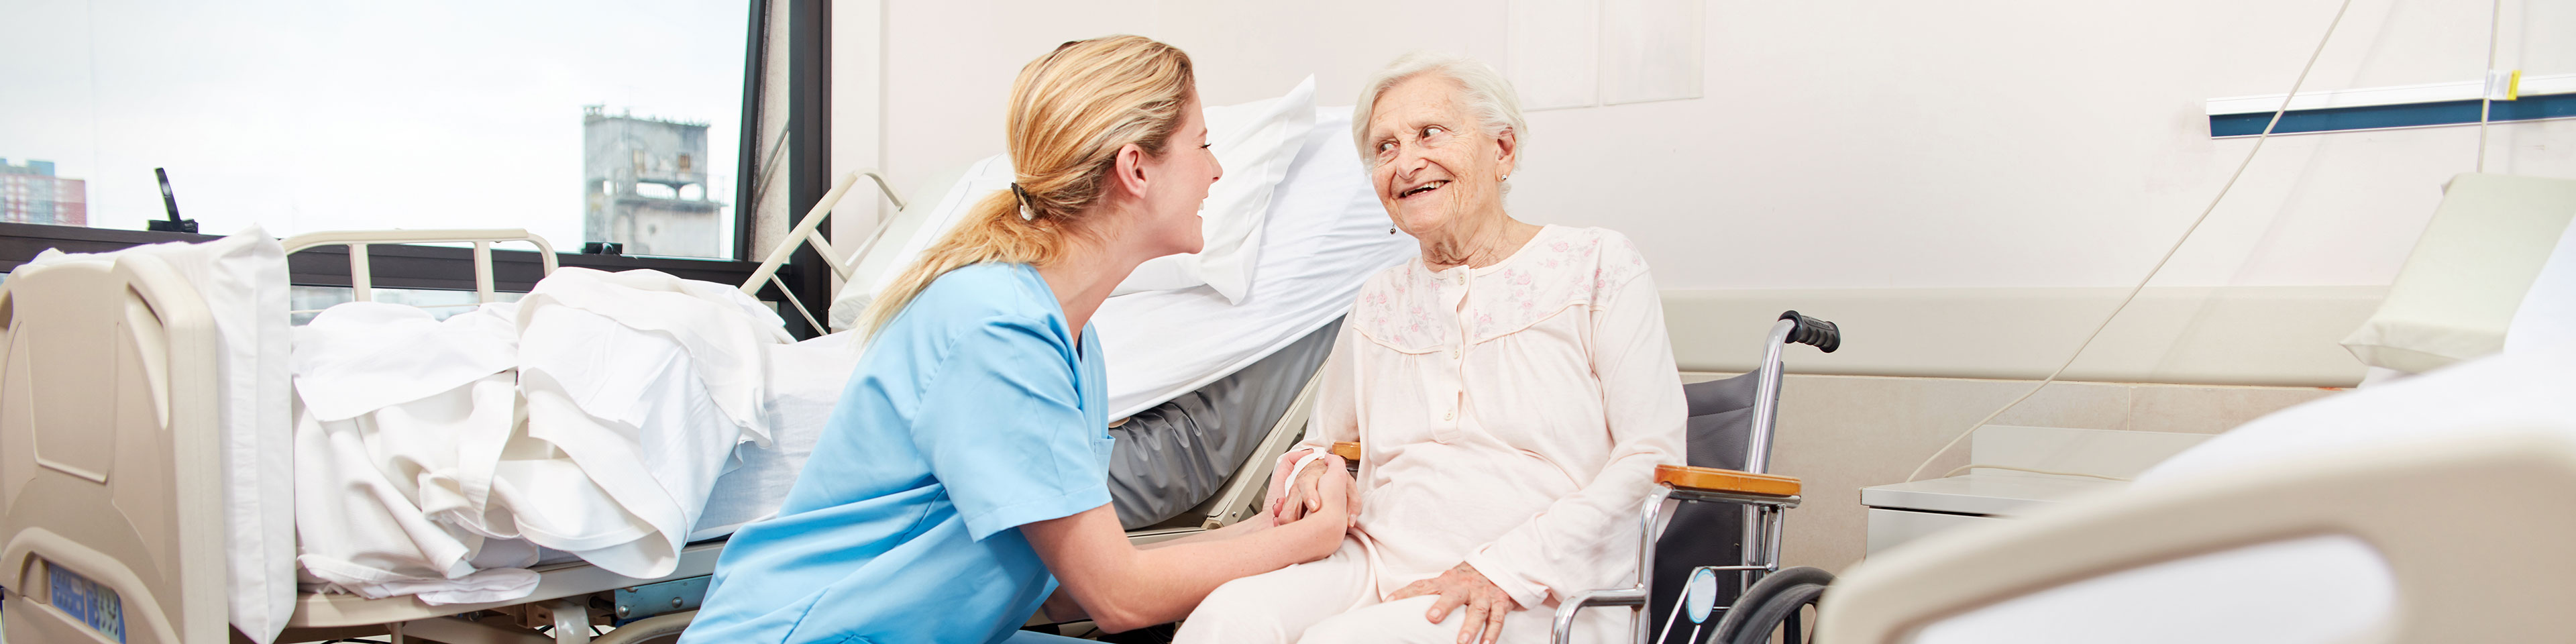 Study: Patient Satisfaction Grows with Nurse Staffing